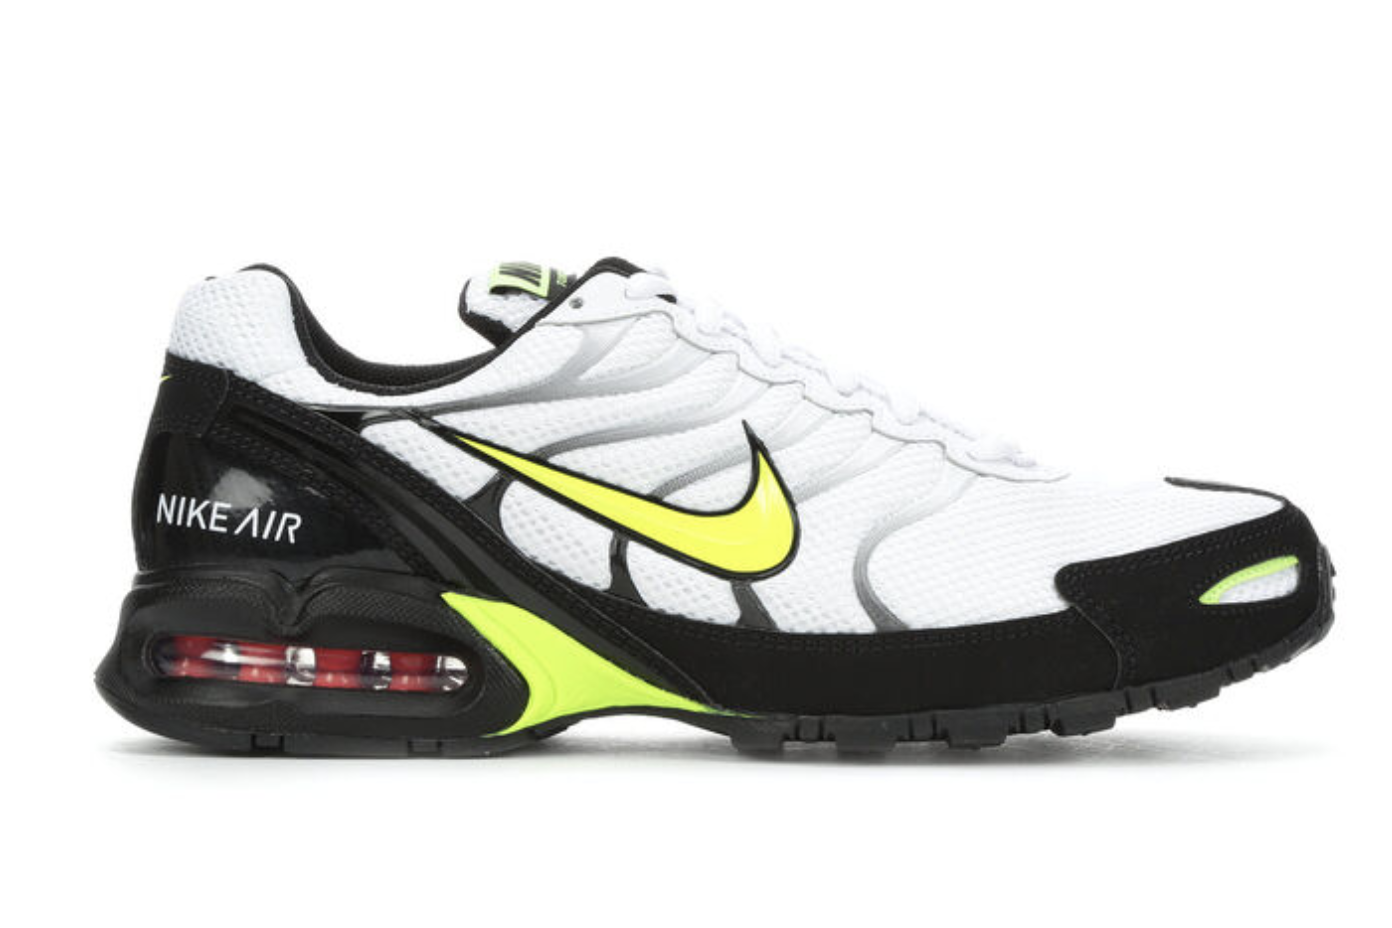 Nike – Air Max Jewell Premium – Schwarze Sneaker in Ponyfell